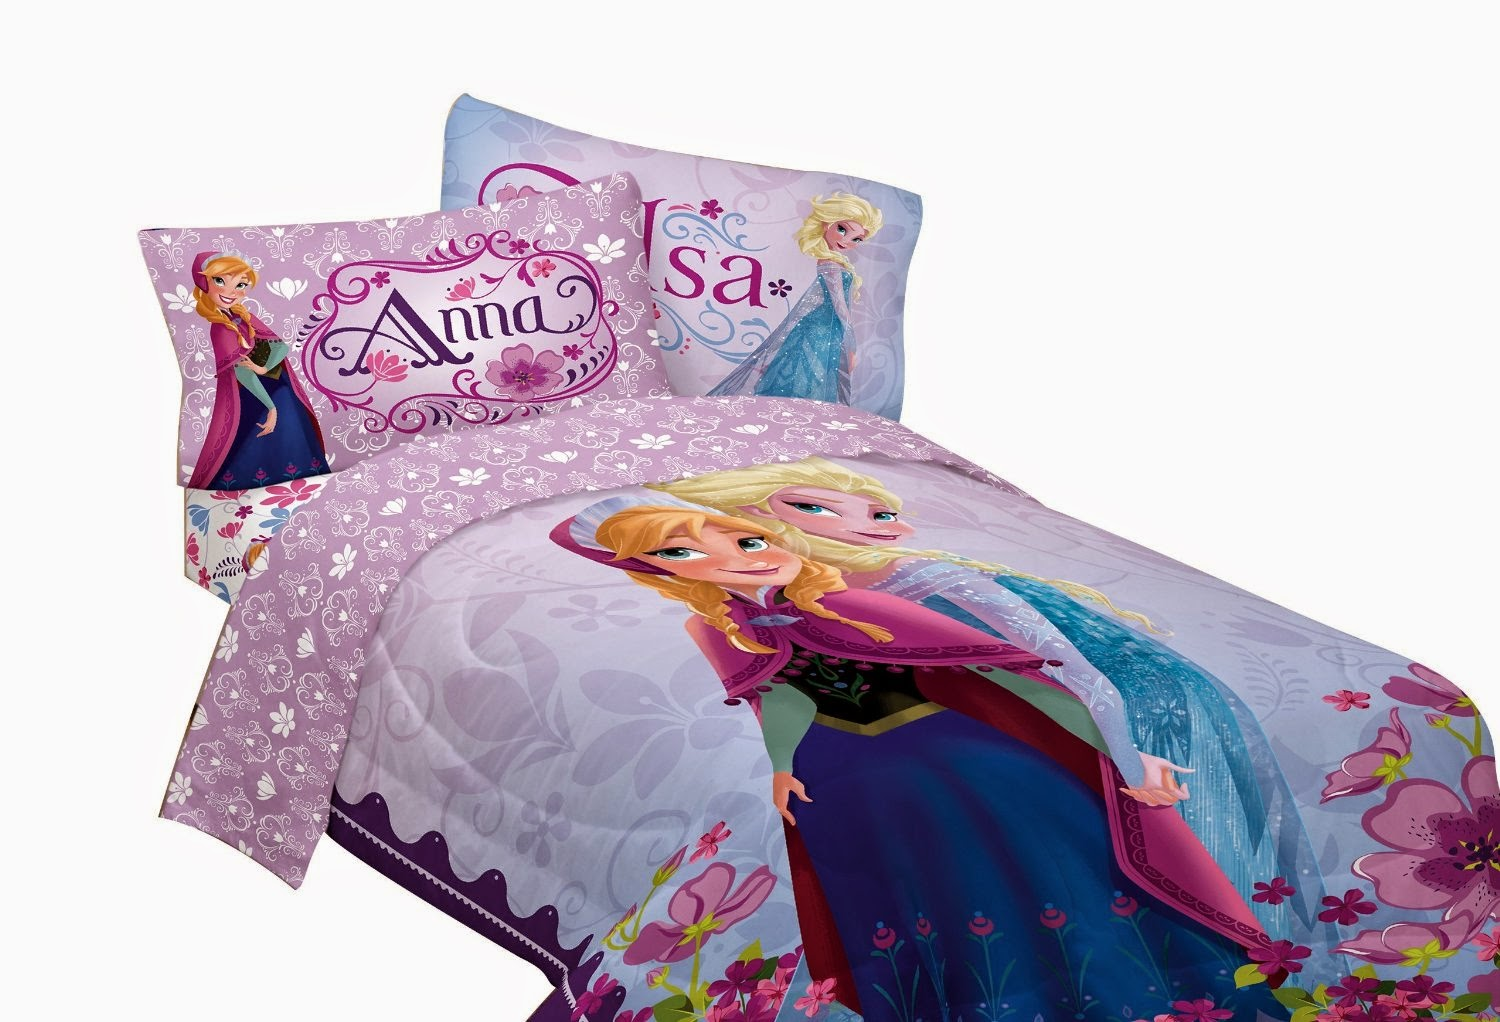 Bedroom Decor Ideas And Designs How To Decorate A Disney